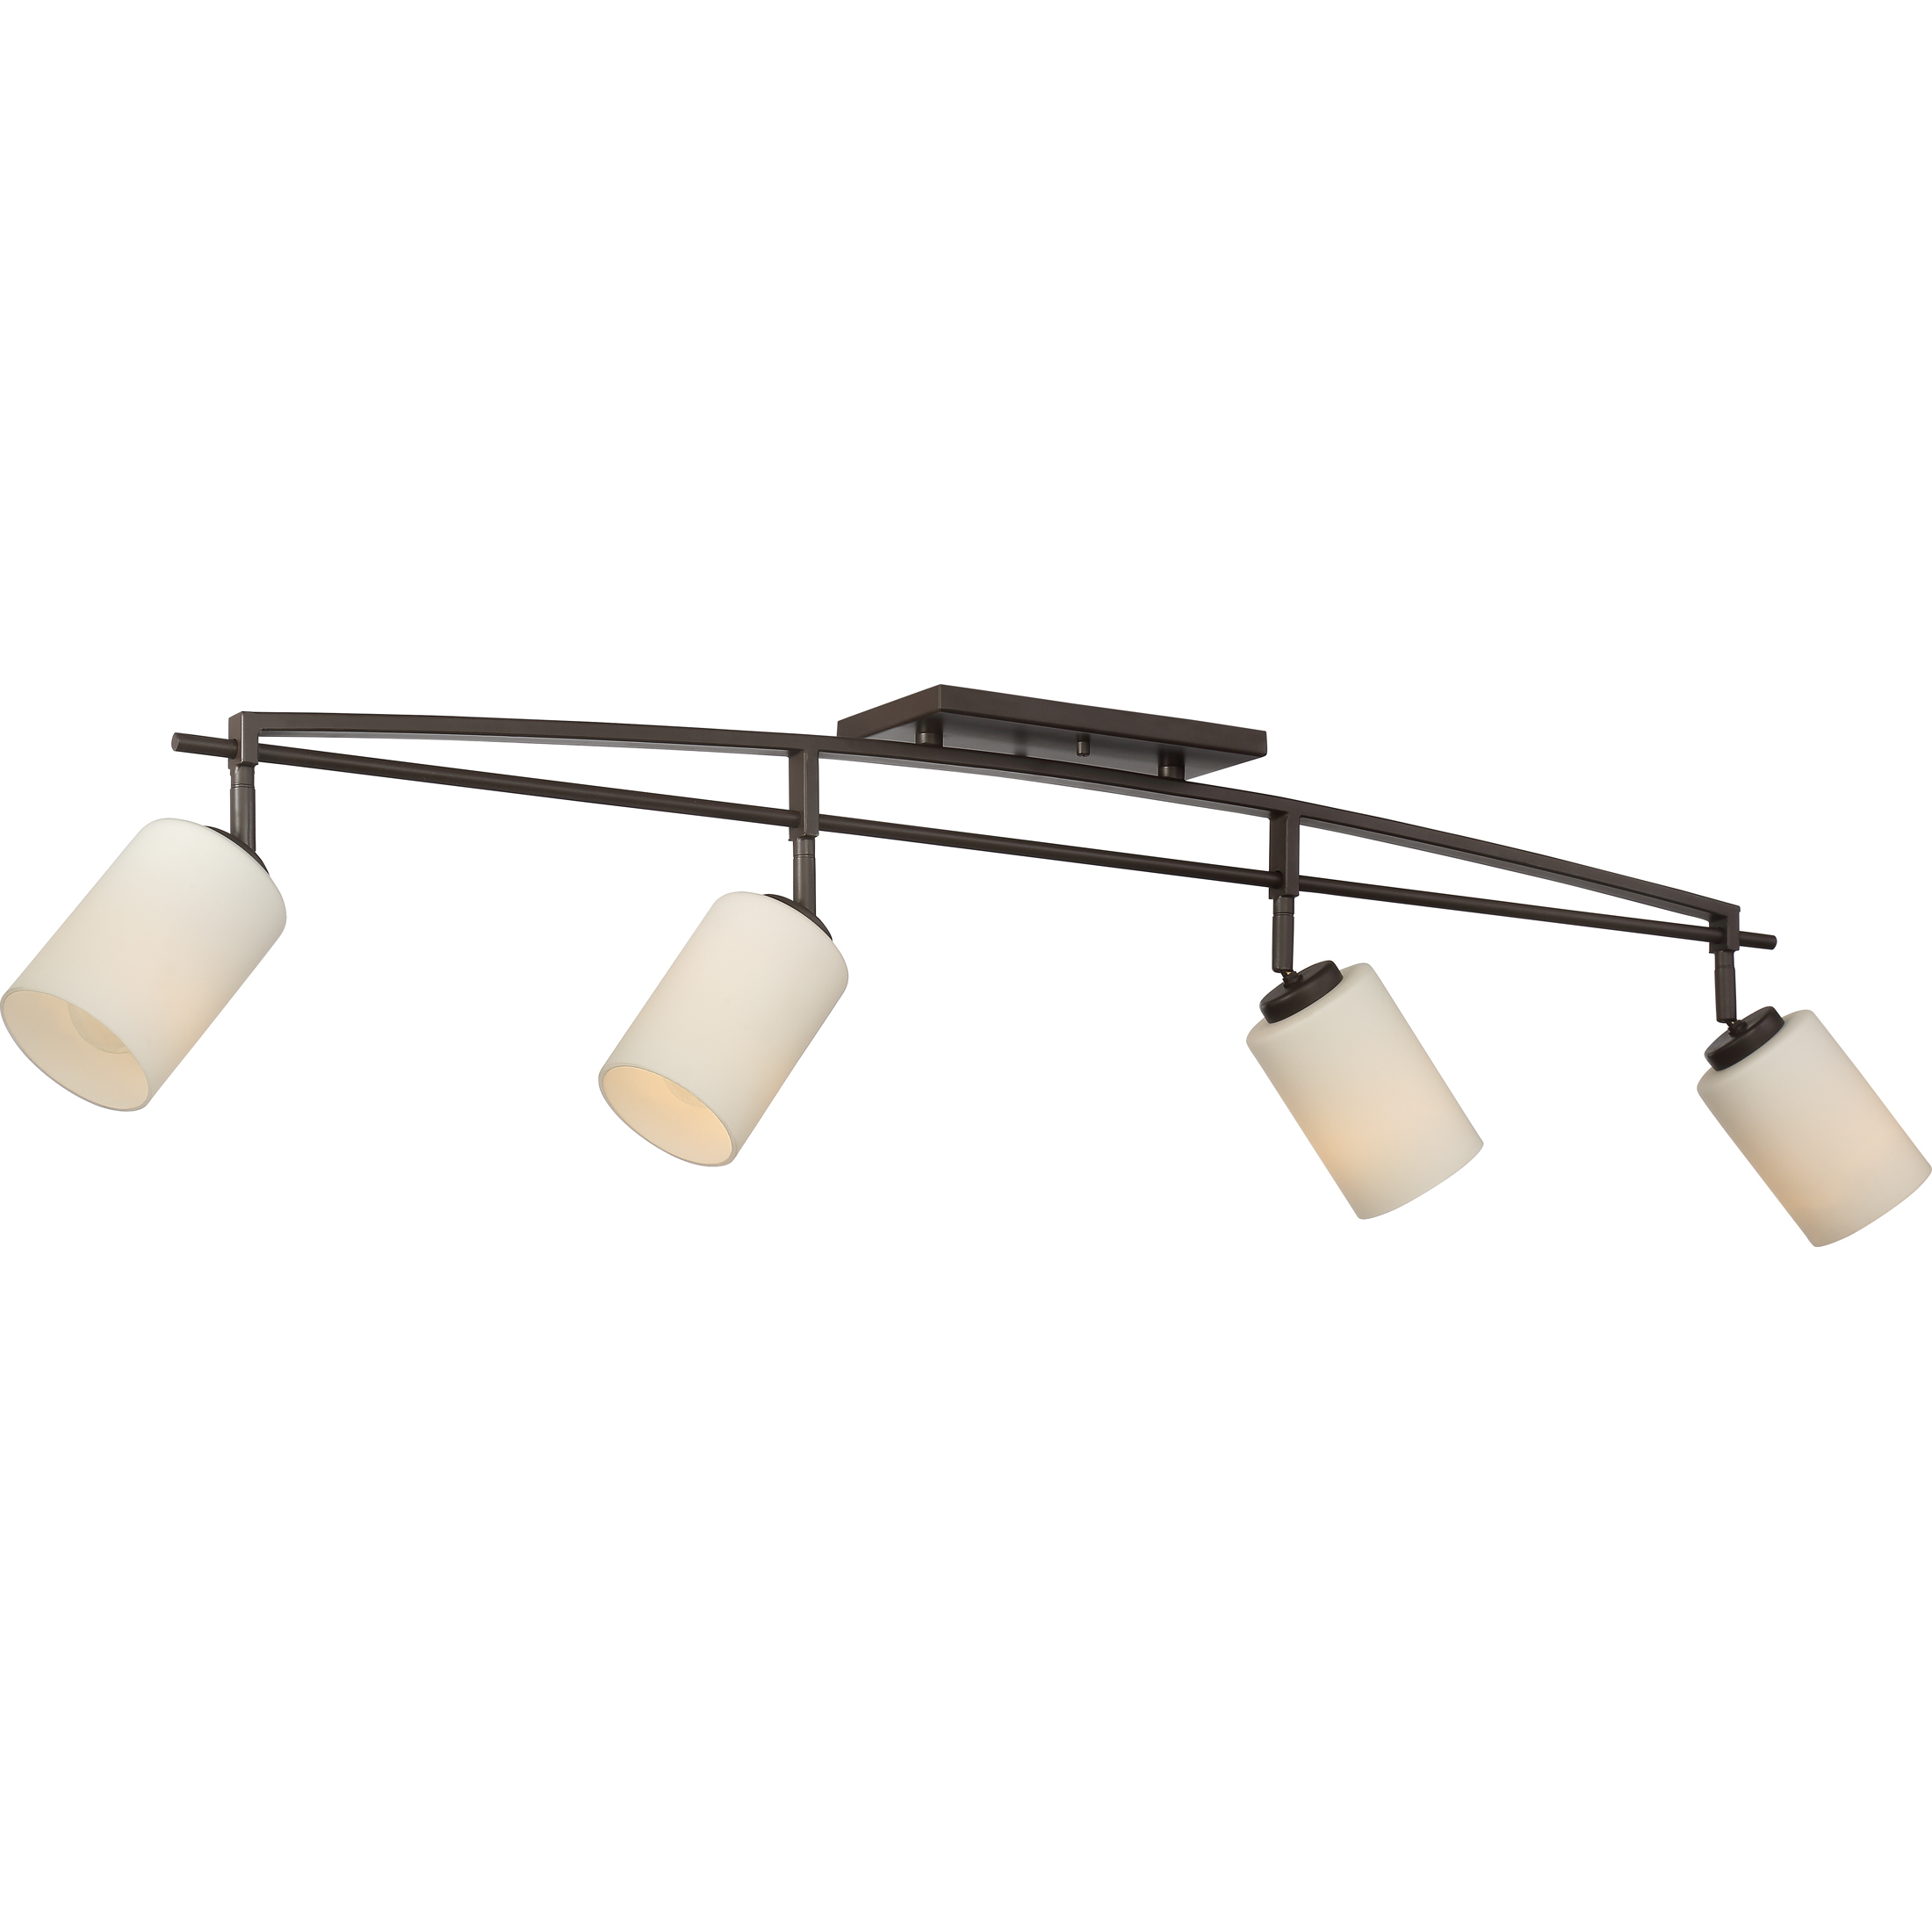 Quoizel Lighting Ty1444wt Shipped Direct